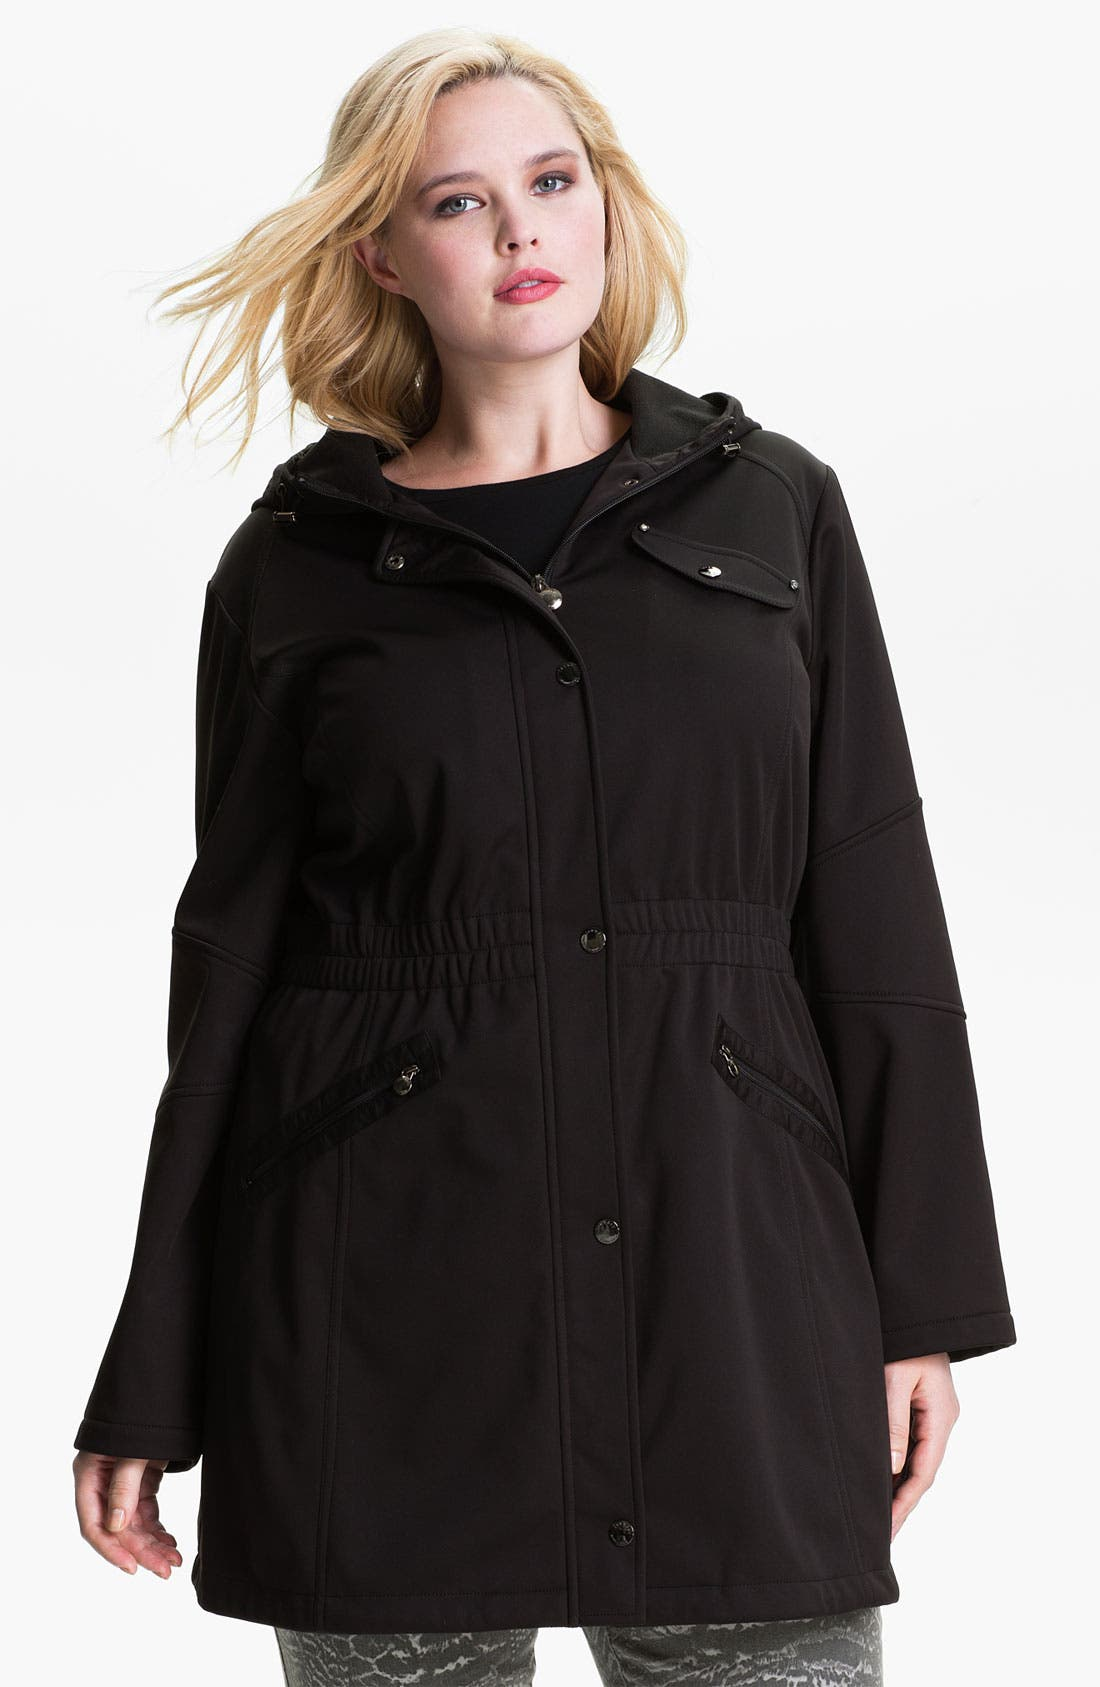 Alternate Image 1 Selected - Laundry by Shelli Segal Softshell Anorak (Plus) (Nordstrom Exclusive)